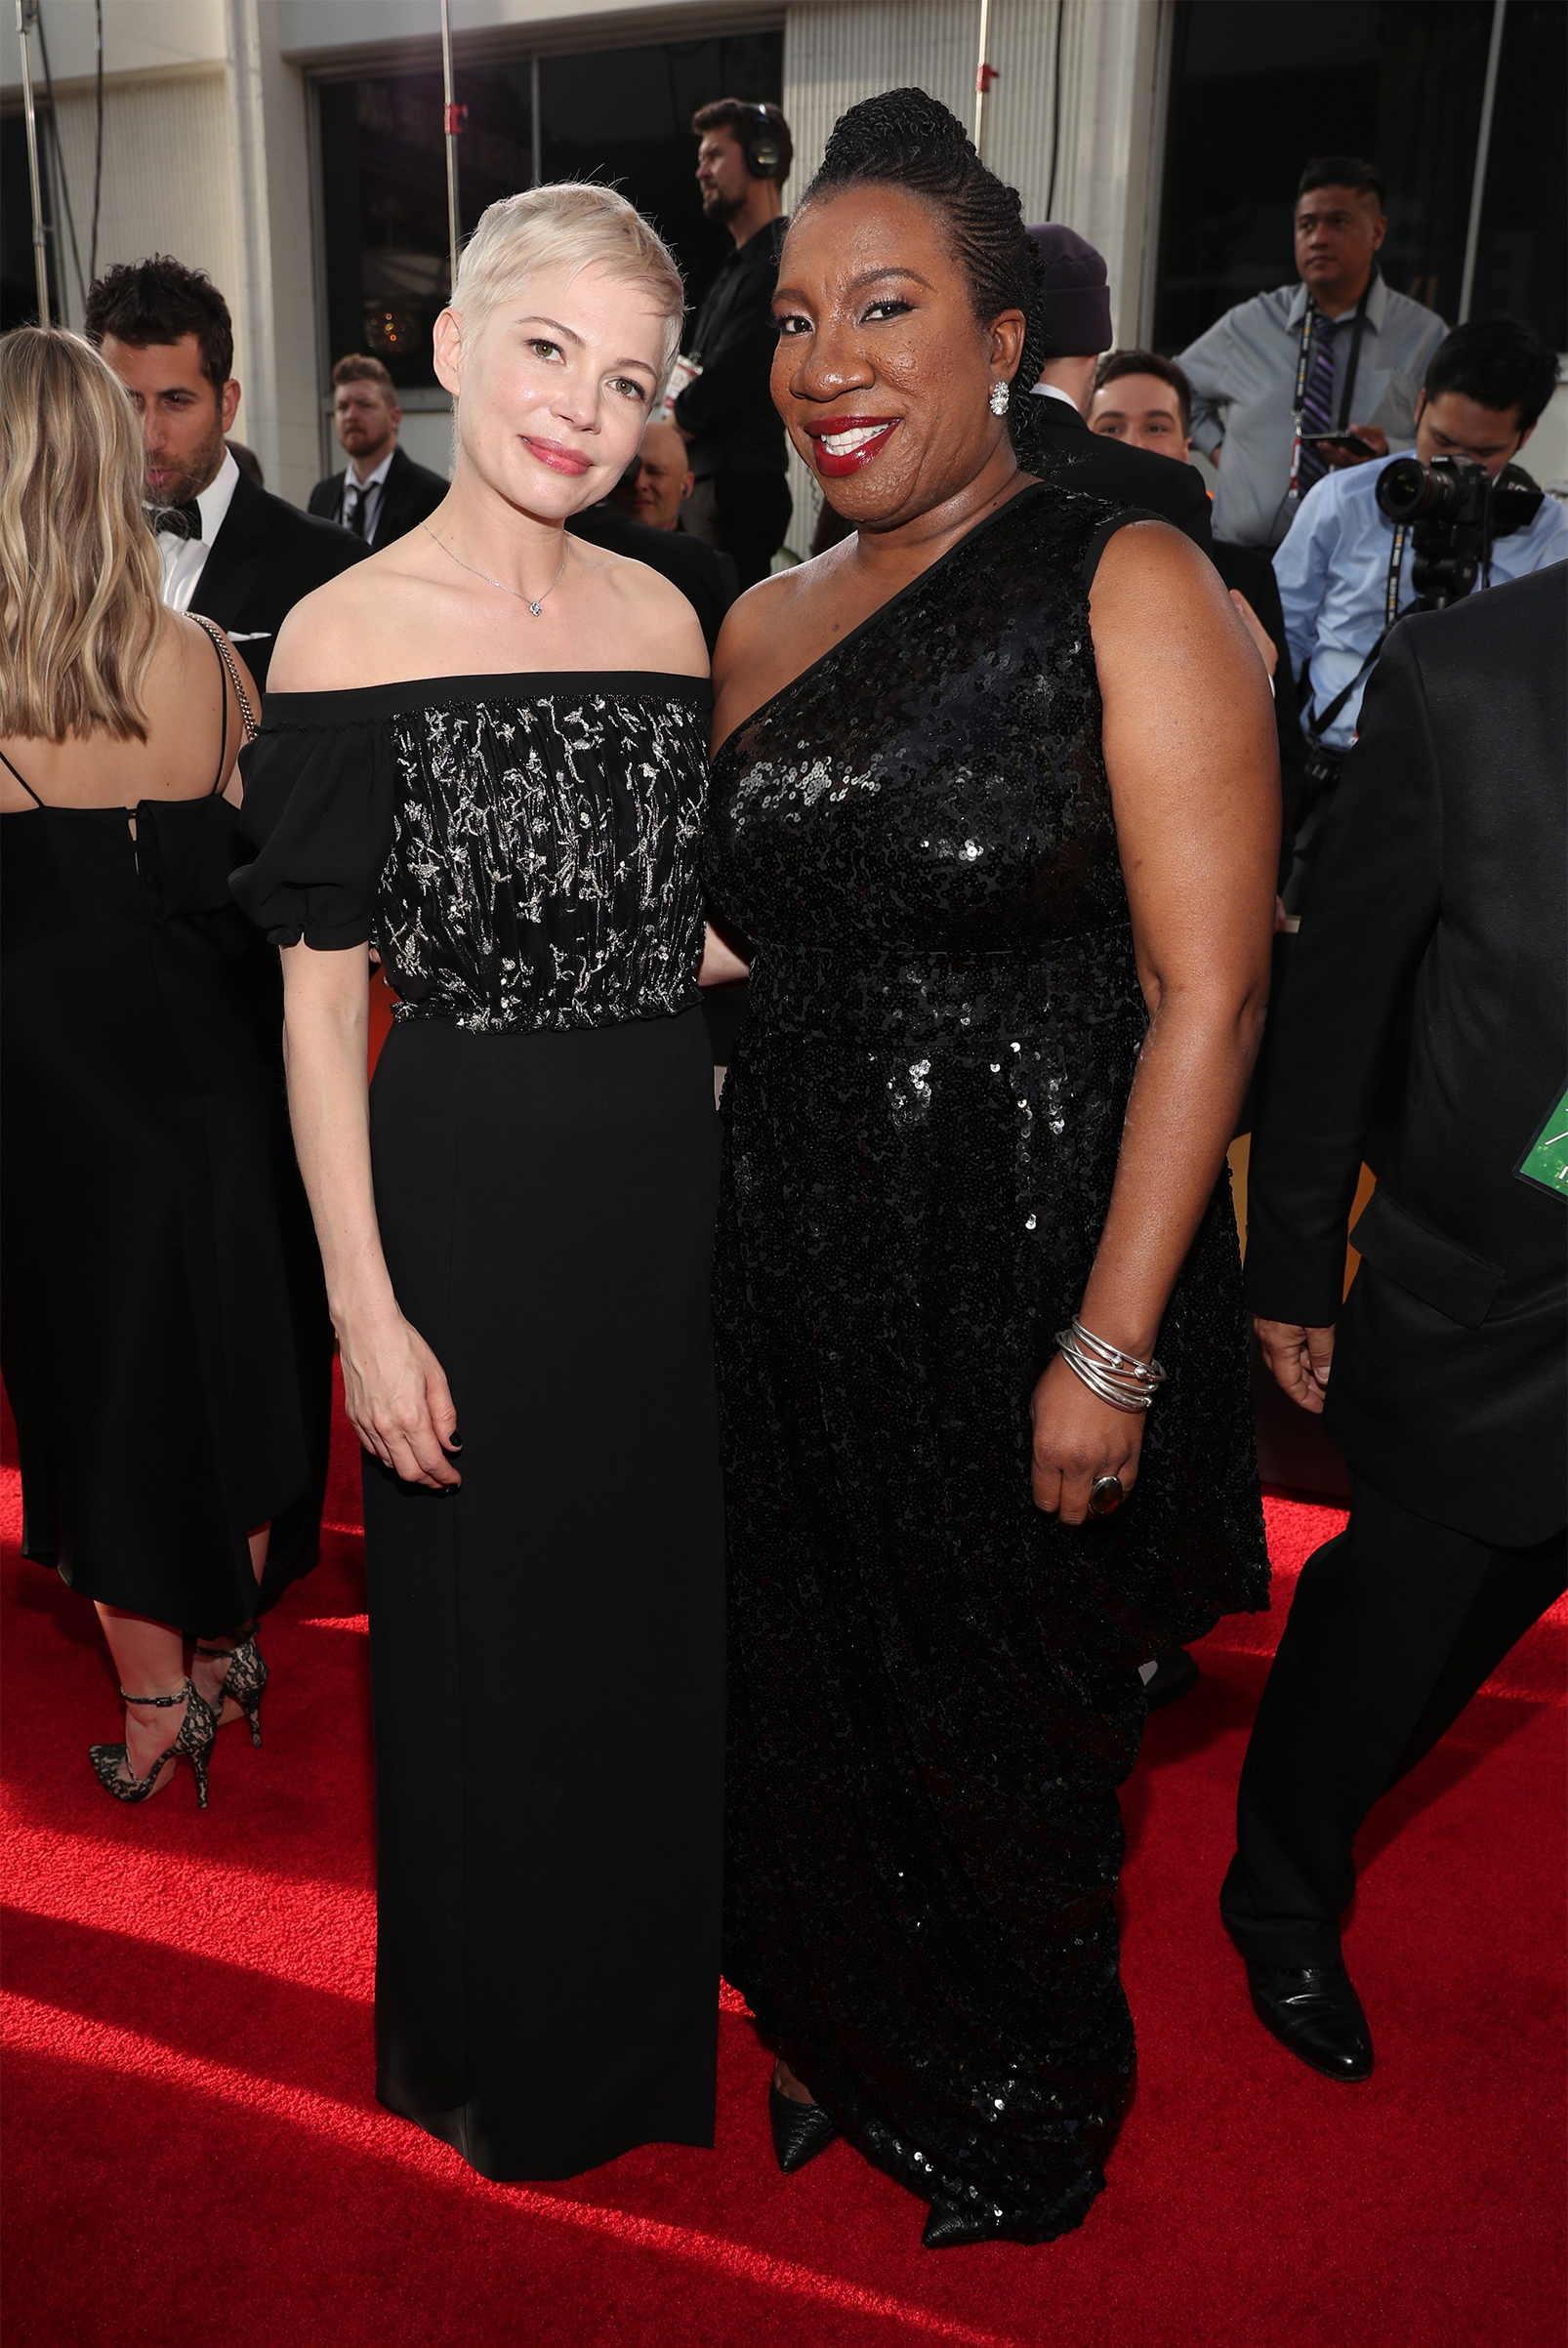 Actor Michelle Williams and activist Tarana Burke arrive to the 75th Annual Golden Globe Awards held at the Beverly Hilton Hotel on January 7, 2018.